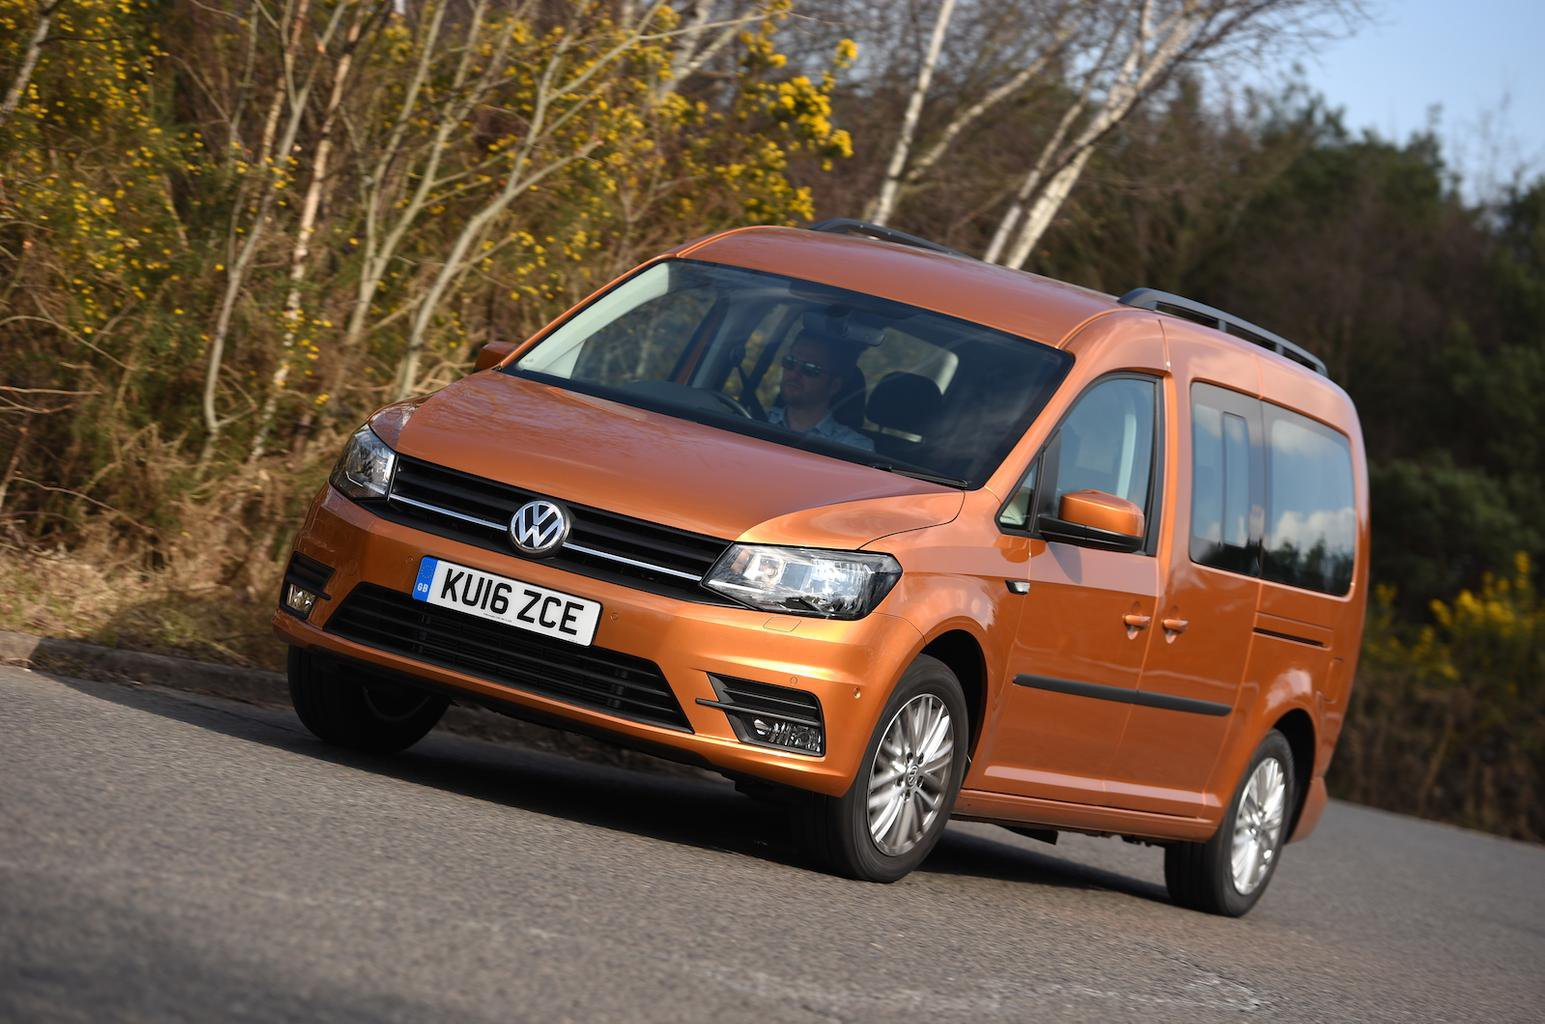 2016 Volkswagen Caddy Maxi Life 1.4 TSI review